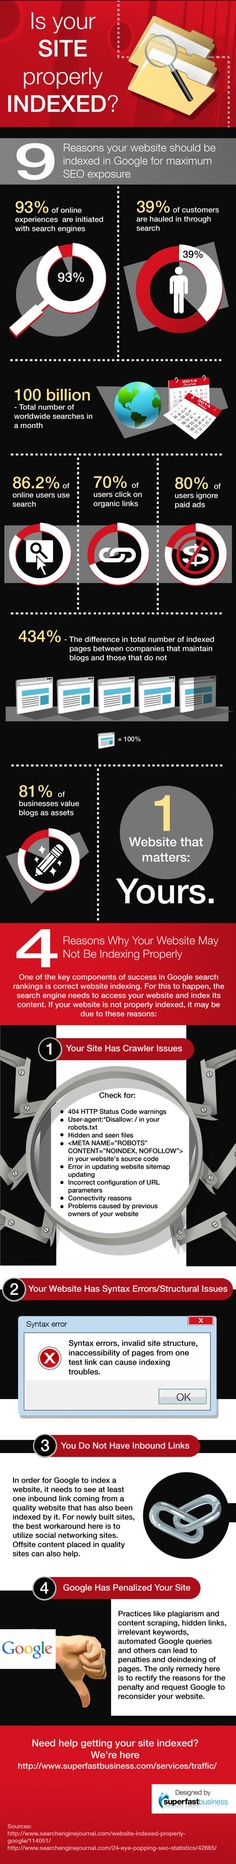 Is Your Site Properly Indexed?